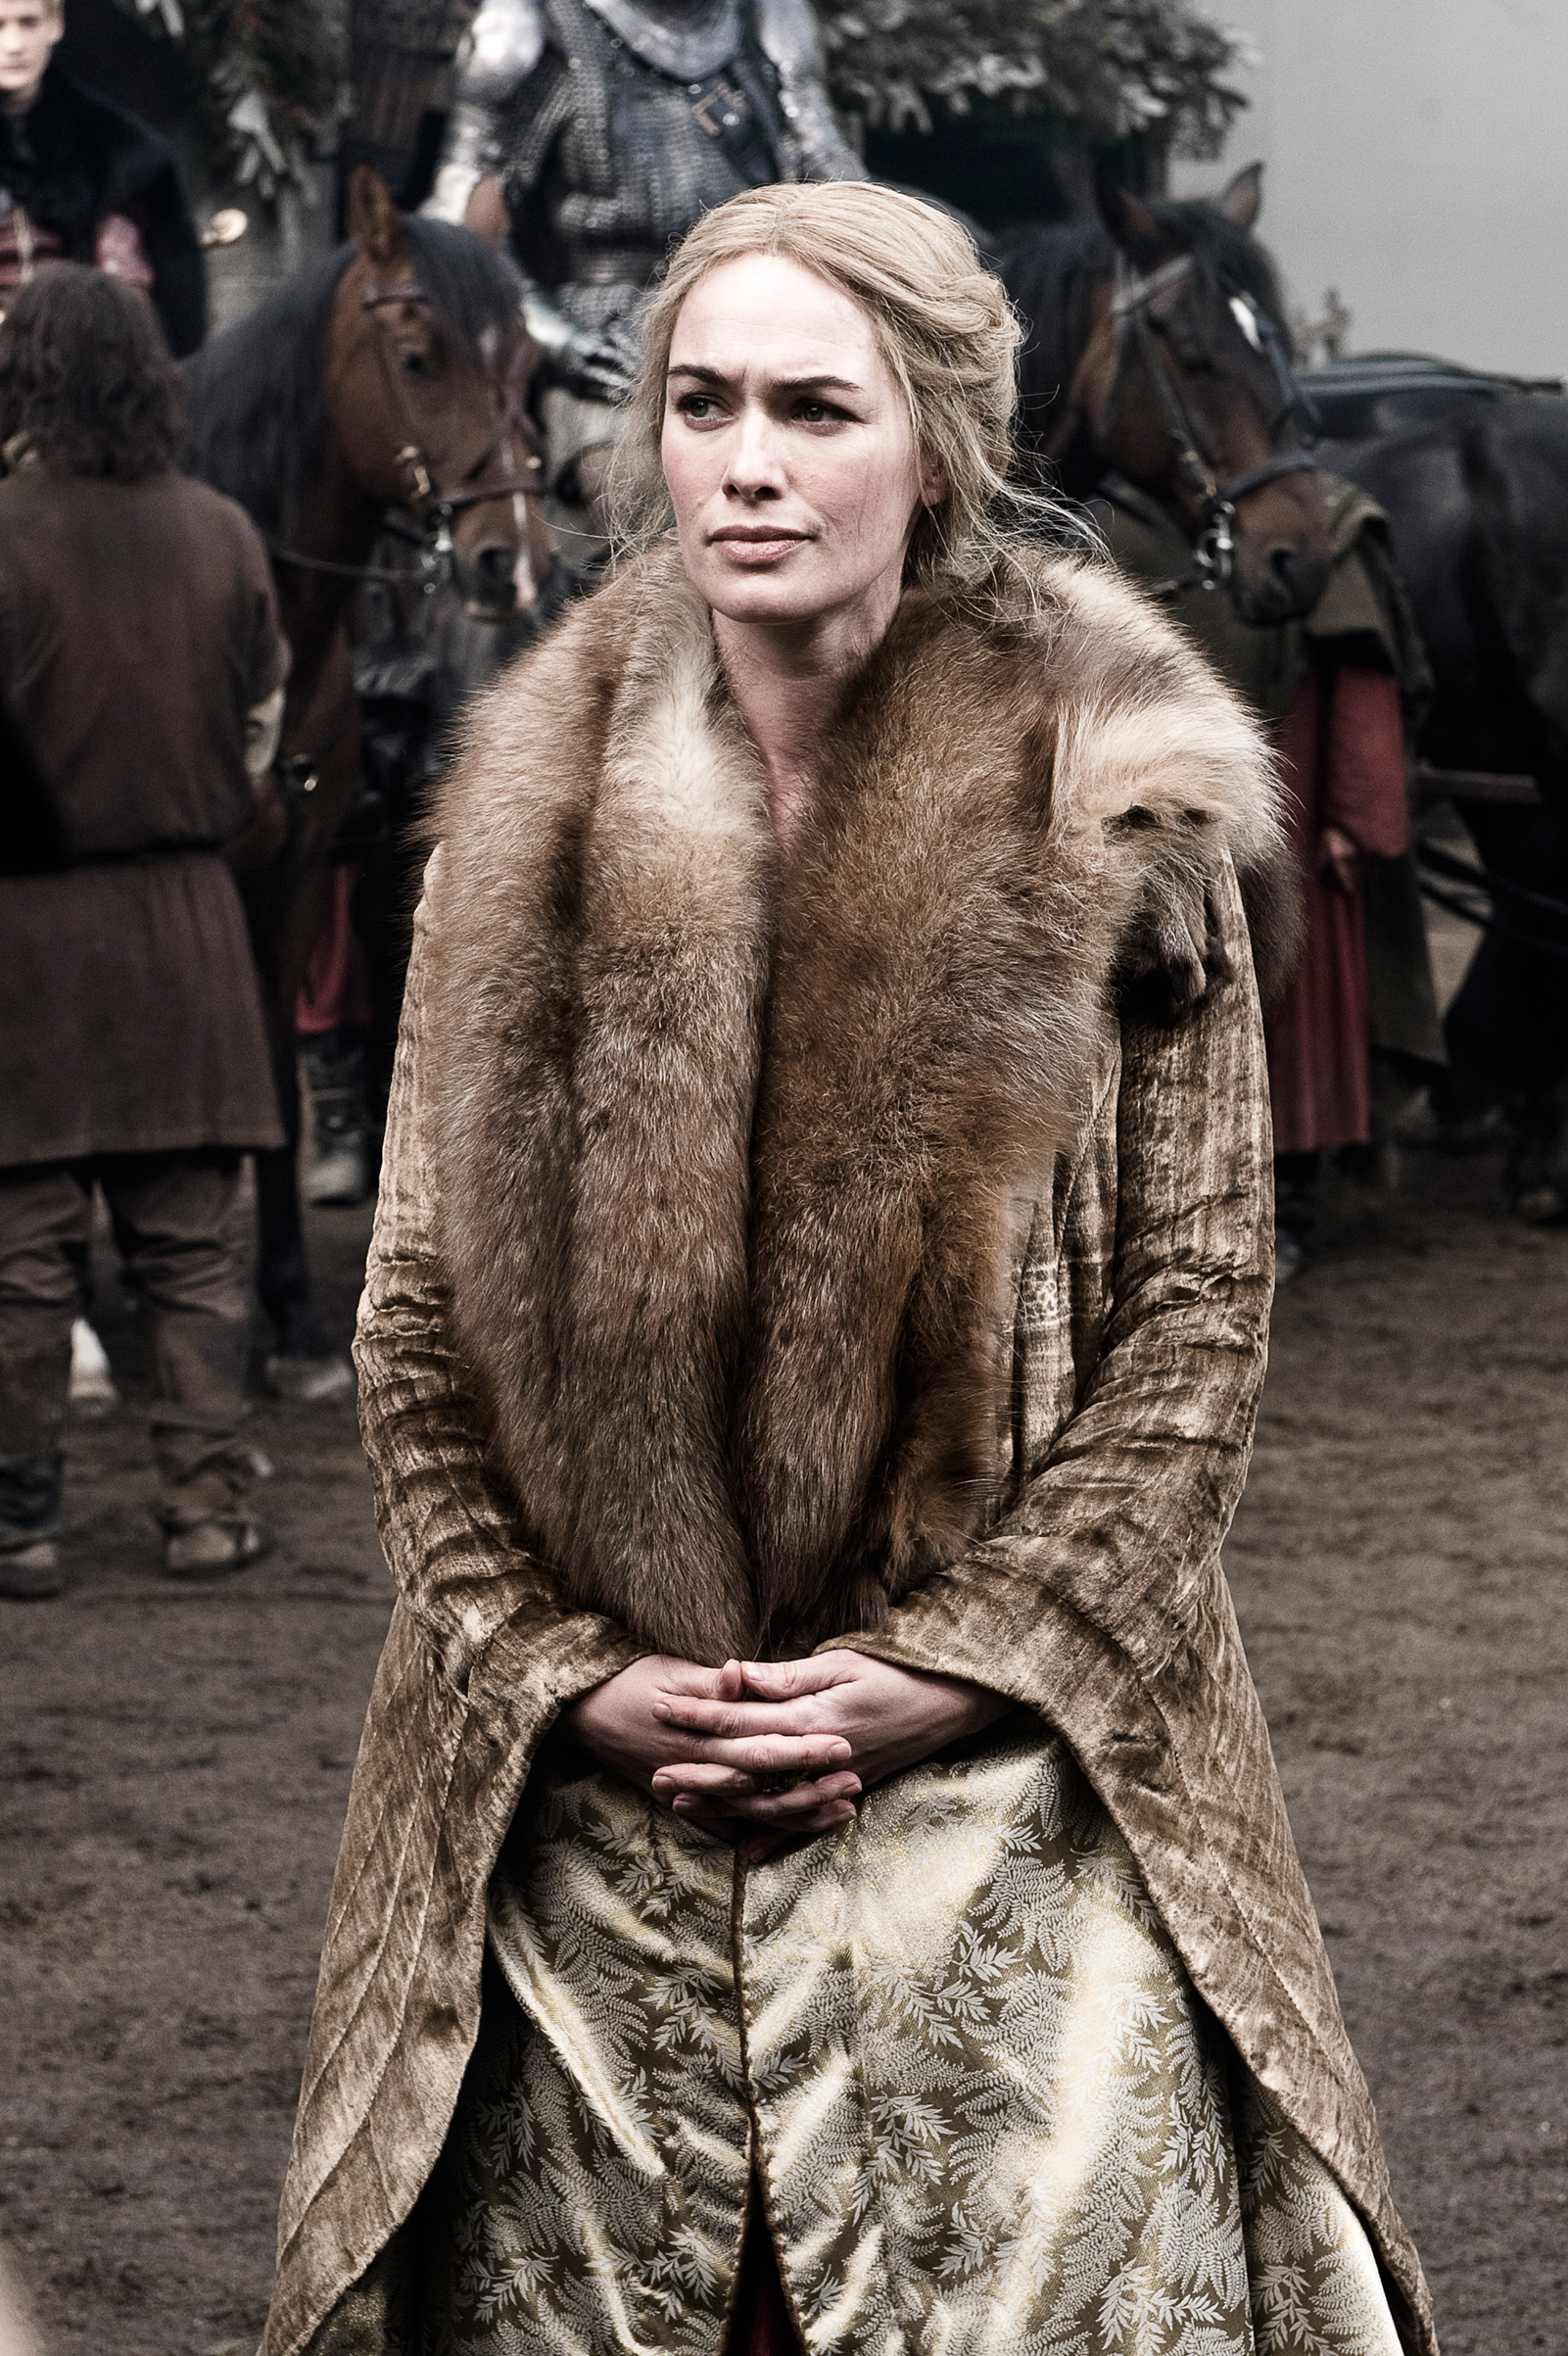 Cersei Lannister in Season 1 of Game of Thrones